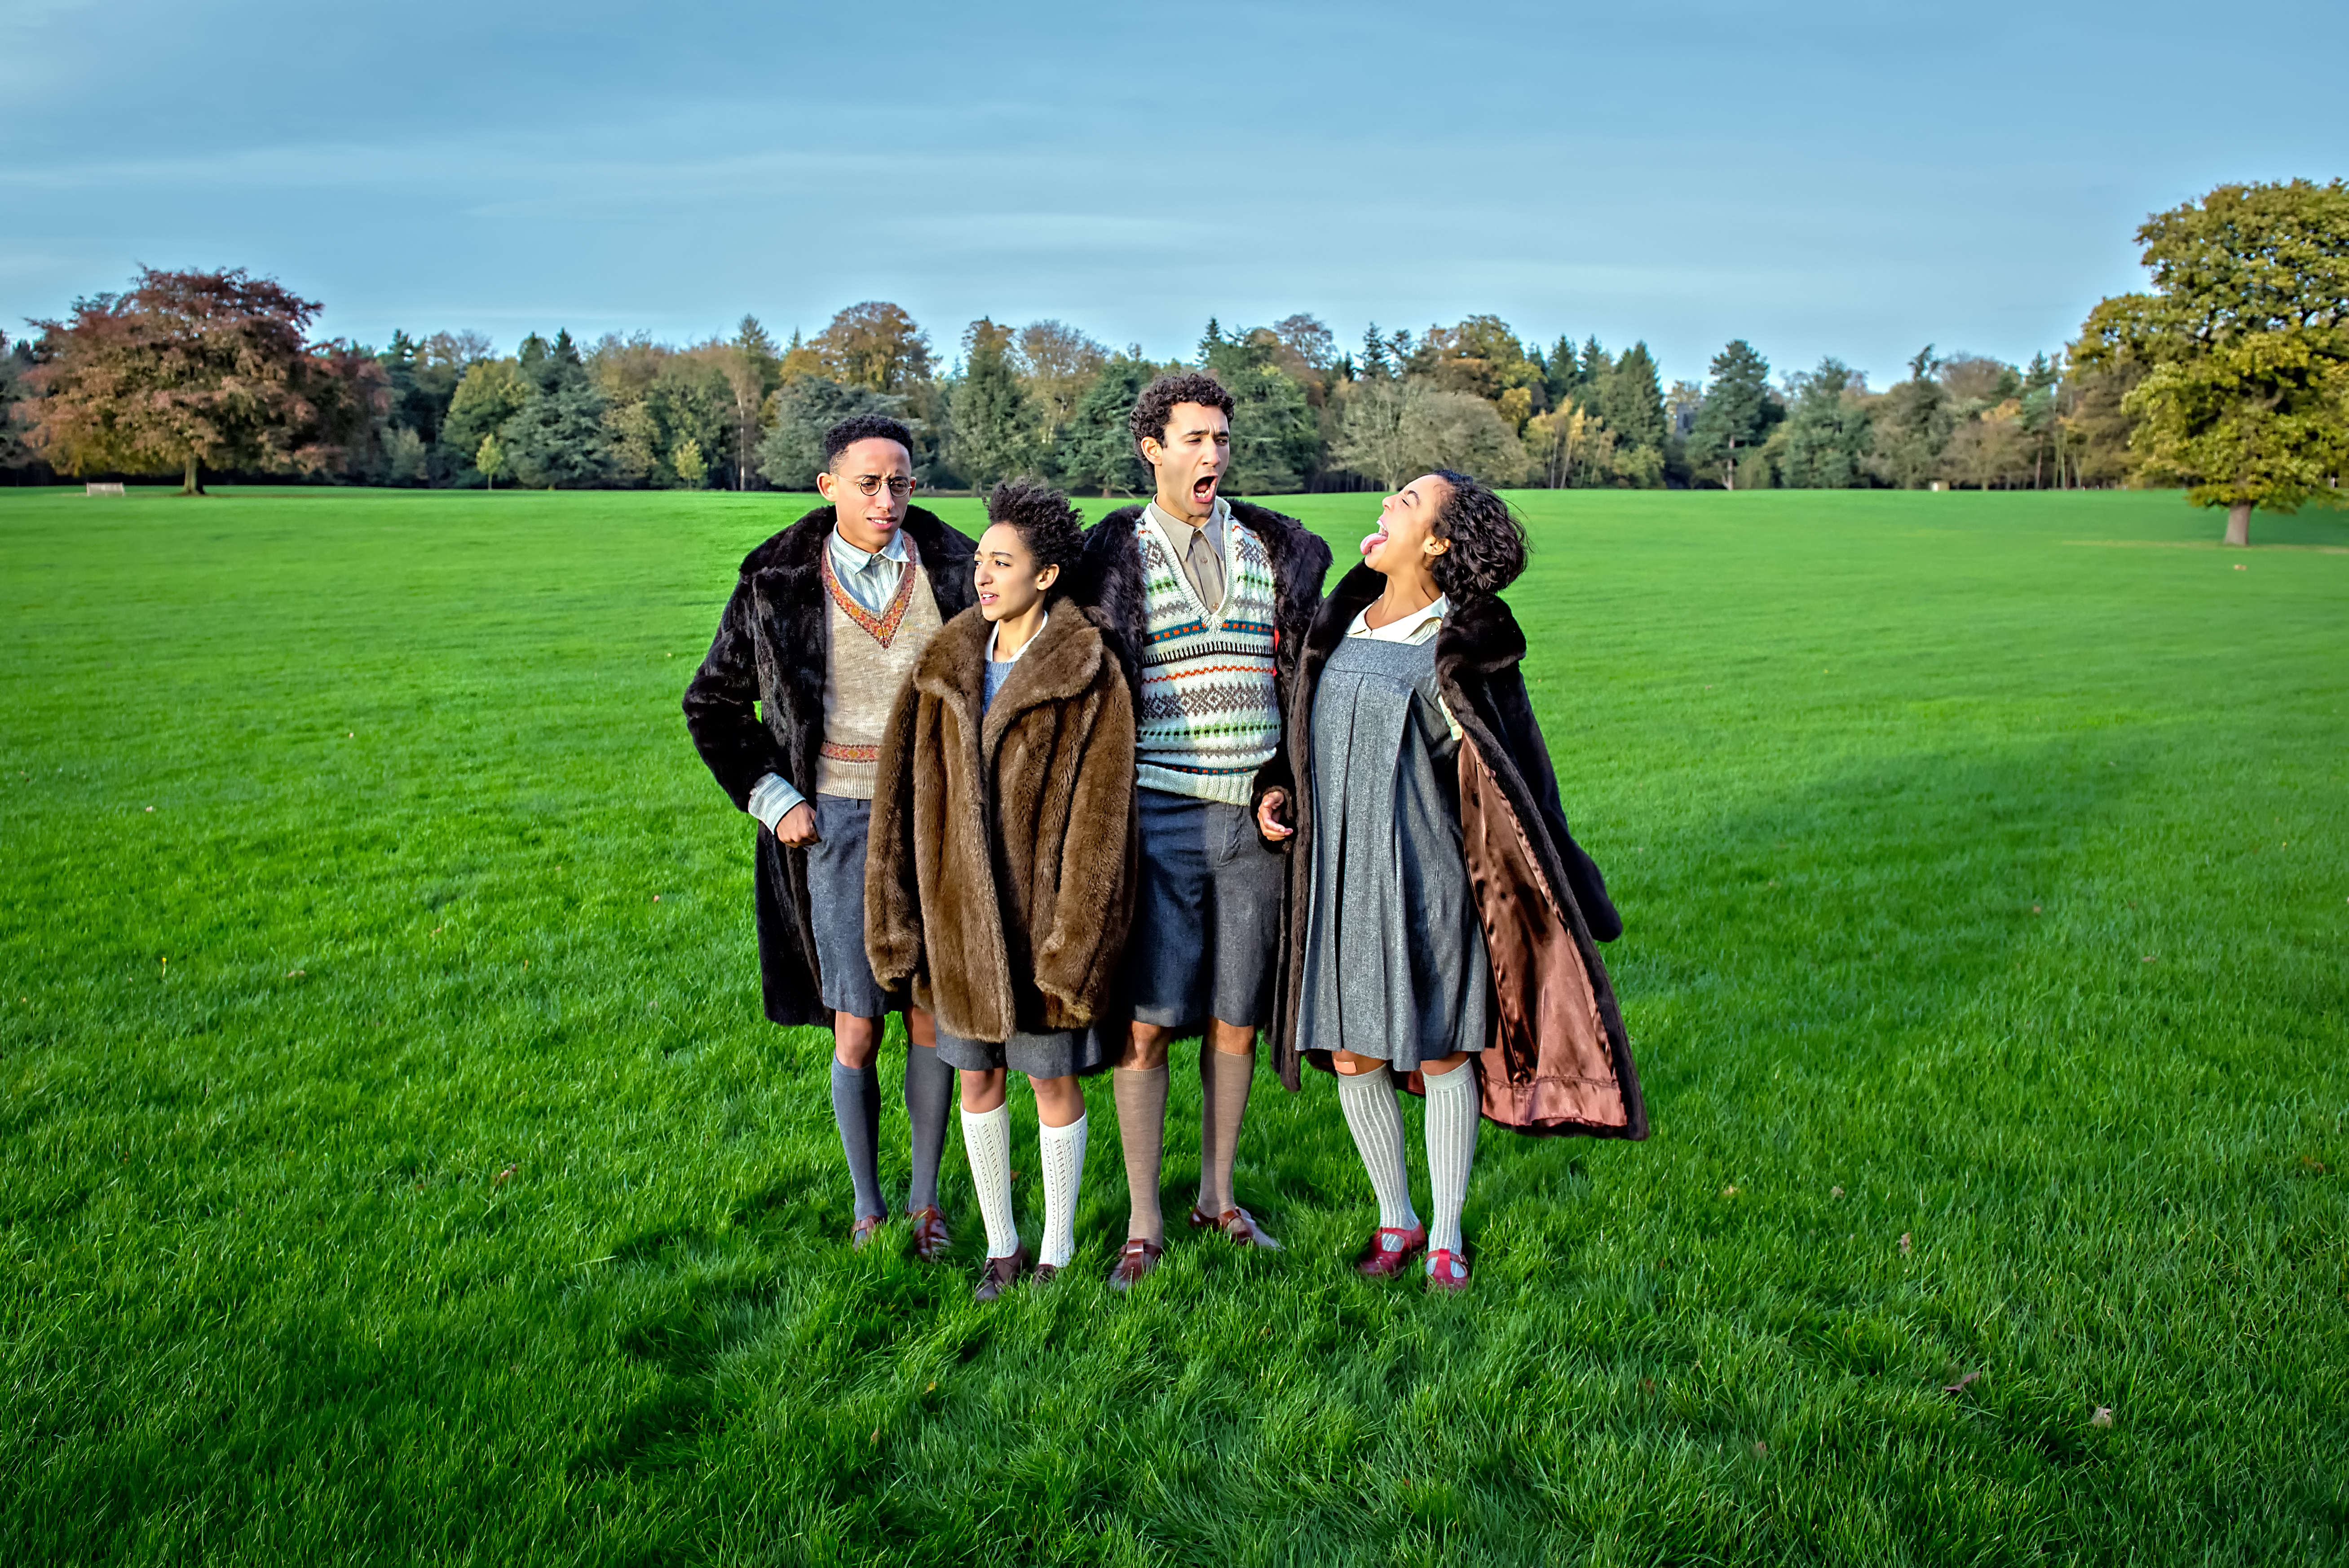 A Pevensie Family Day Out: The cast of The Lion, The Witch & The Wardrobe explore Harewood House